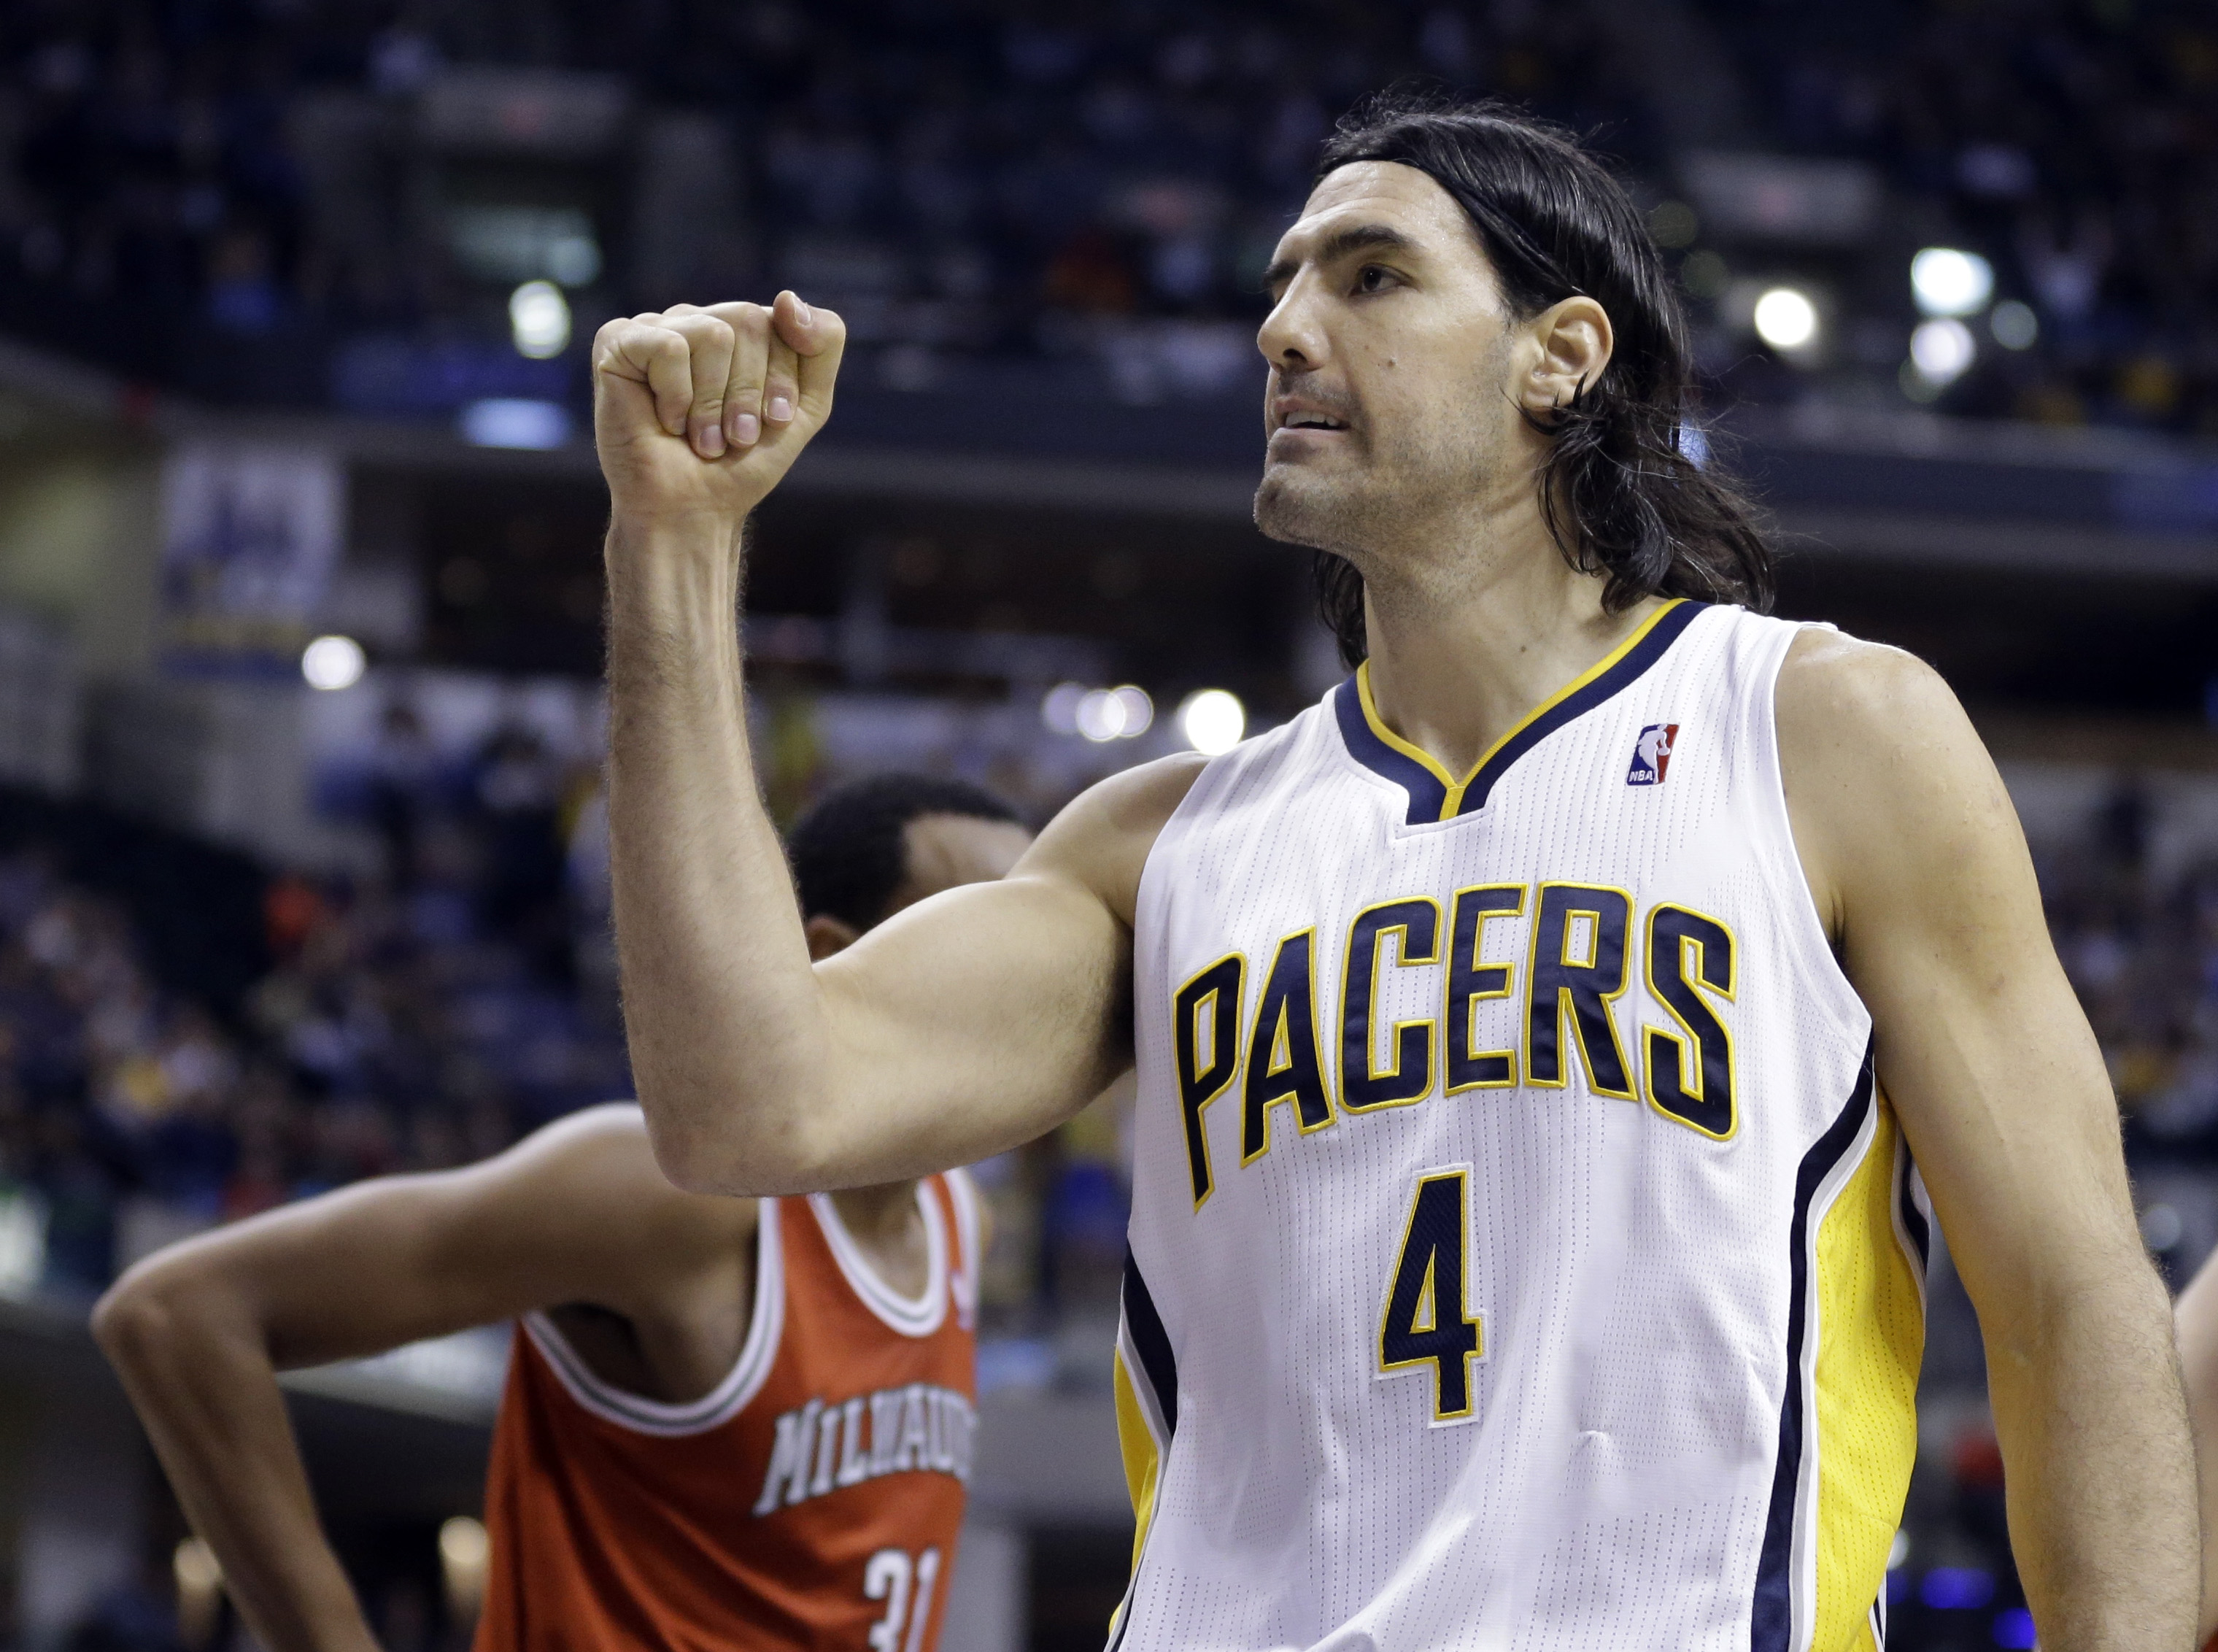 Pacers have early chance to pull away in Central